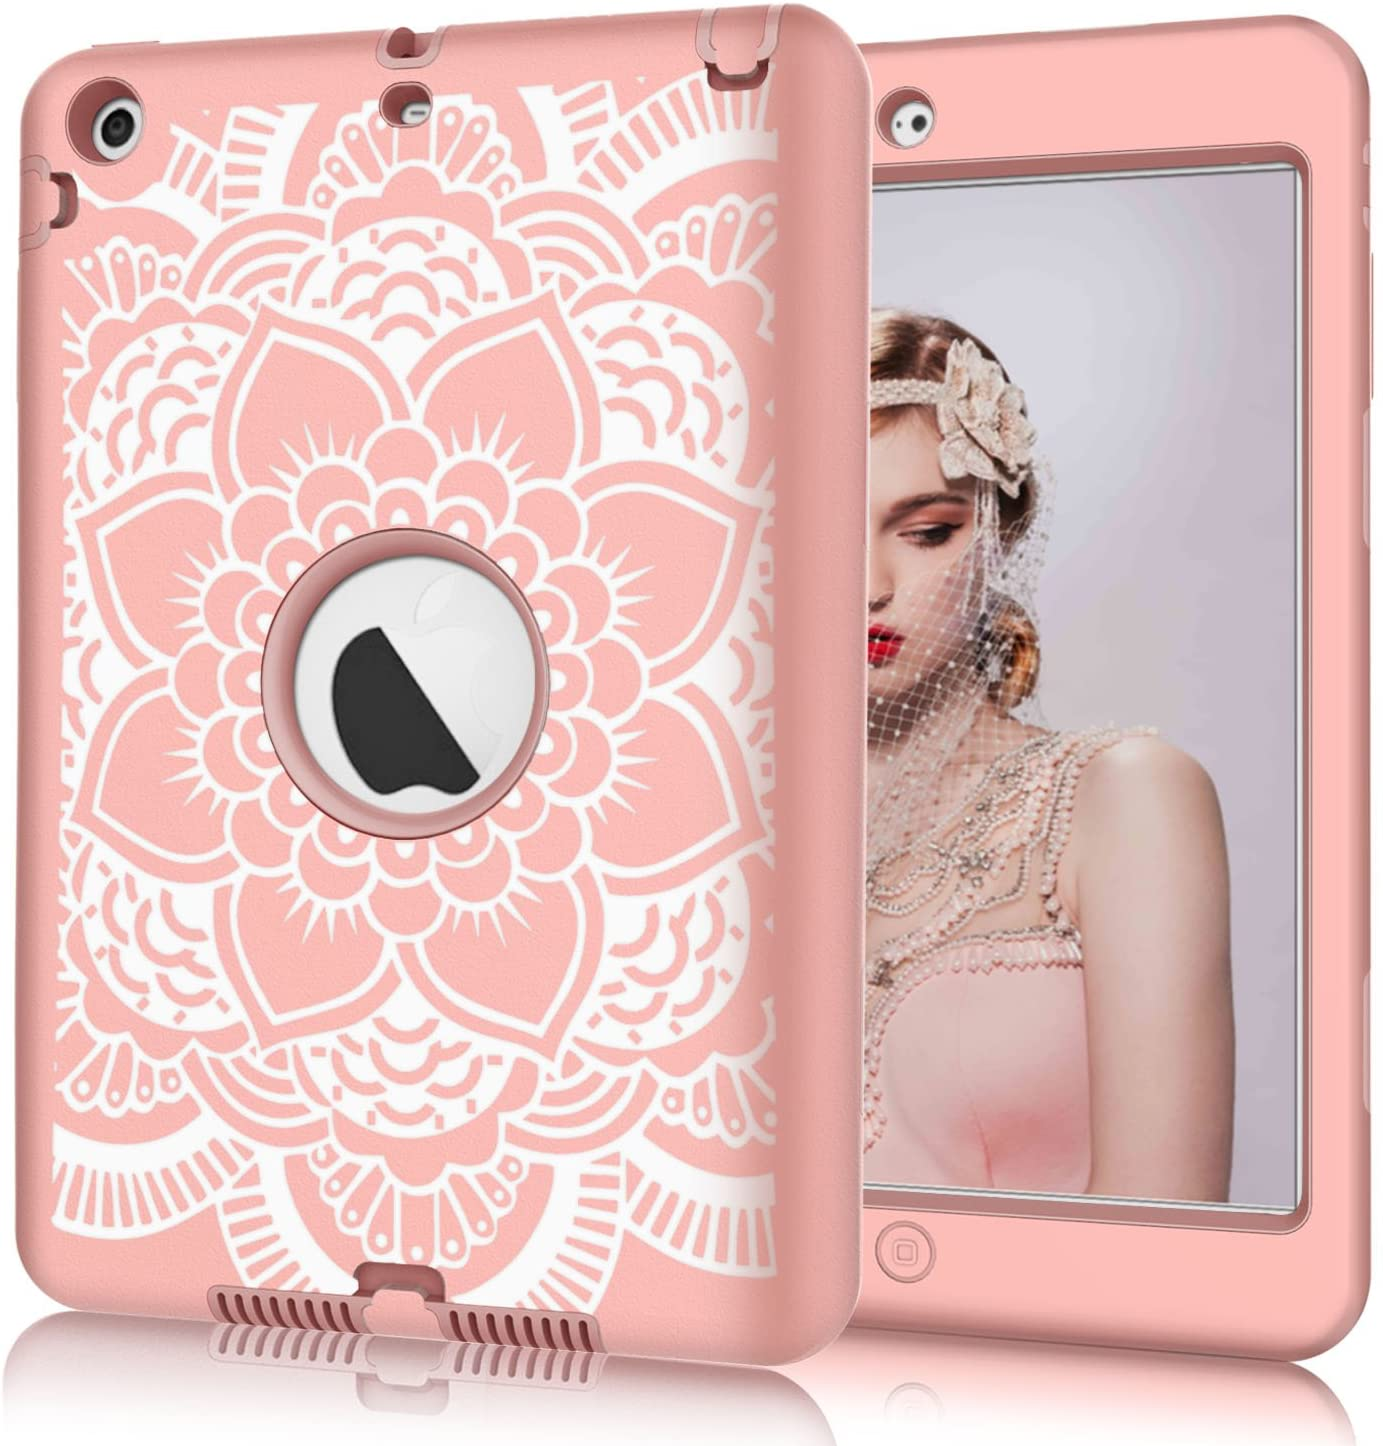 Hocase iPad mini/2/3 Case, Shockproof Hybrid Dual Layer Hard Rubber Protective Case with Cute Flower Design for Apple iPad Mini 1st/2nd/3rd gen 7.9-inch - Rose Gold